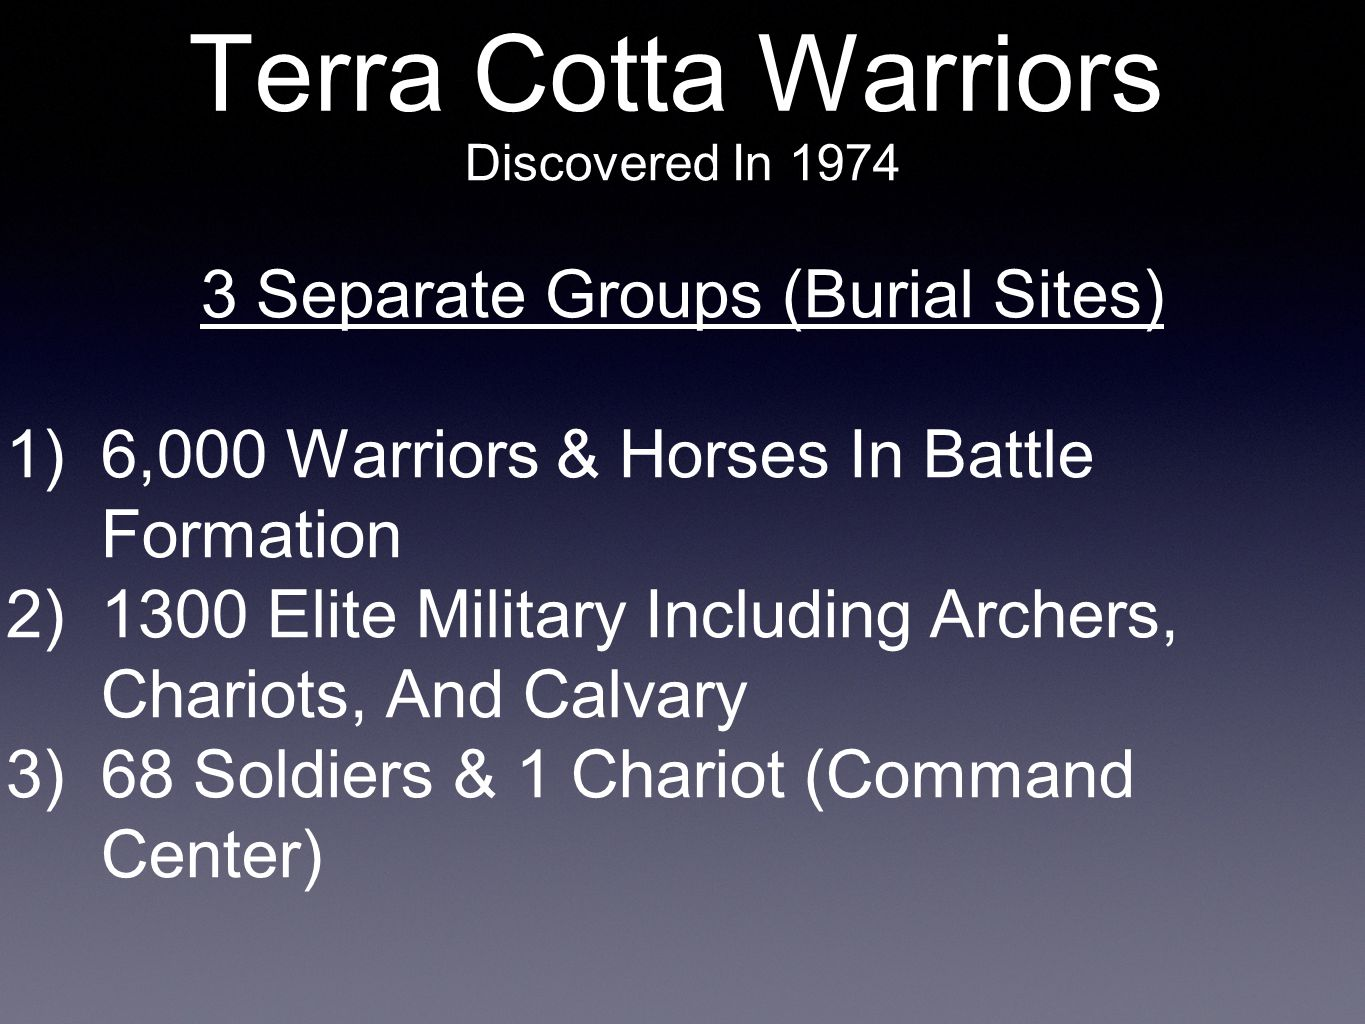 Discovered In 1974 3 Separate Groups (Burial Sites) 1)6,000 Warriors & Horses In Battle Formation 2)1300 Elite Military Including Archers, Chariots, A